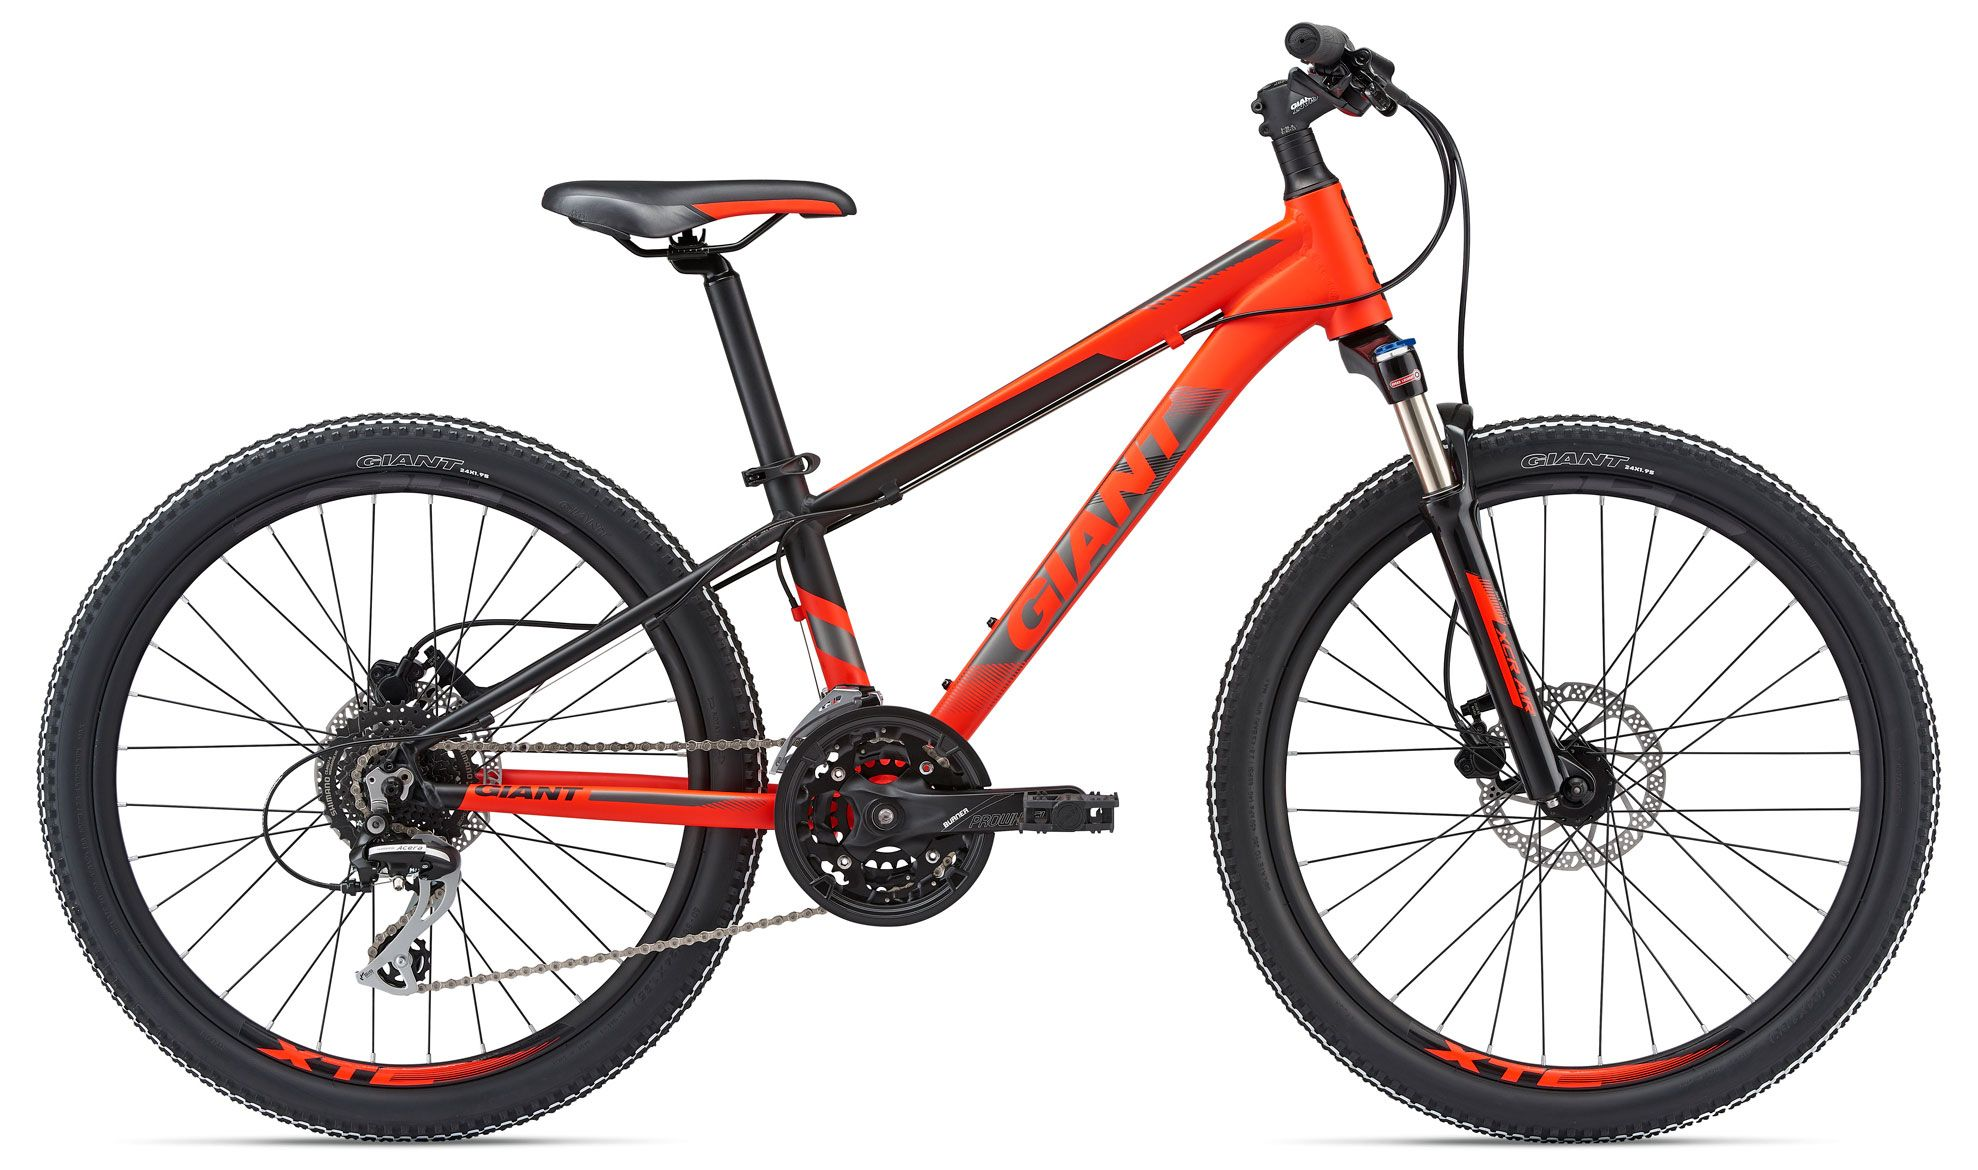 Велосипед Giant XtC SL Jr 24 2018 велосипед giant xtc advanced 27 5 2 2014